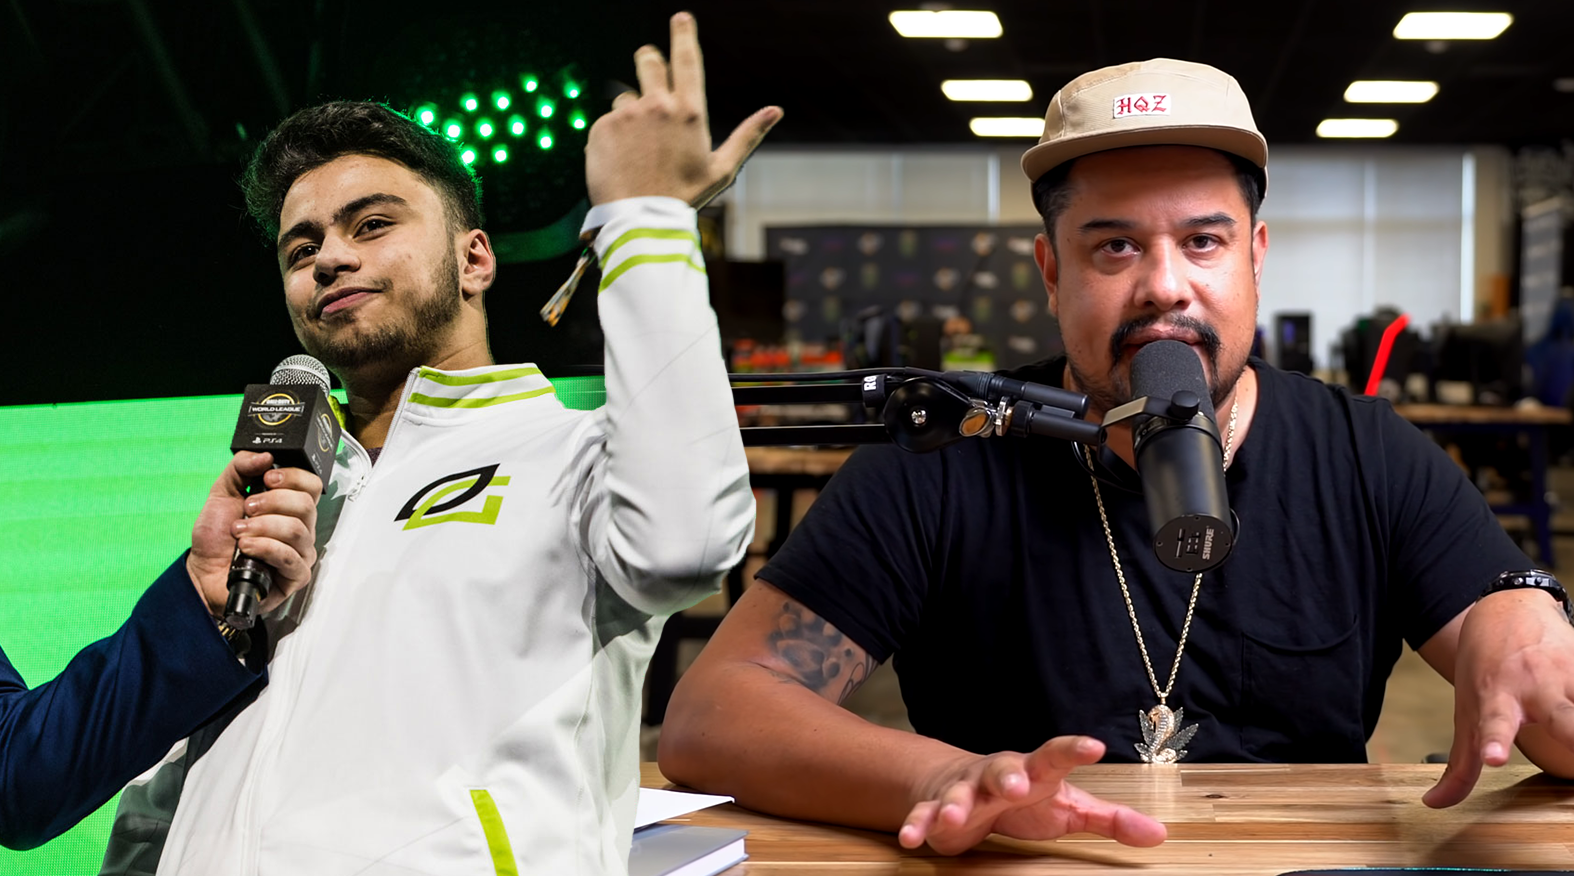 Dashy on stage / Hecz talking to camera